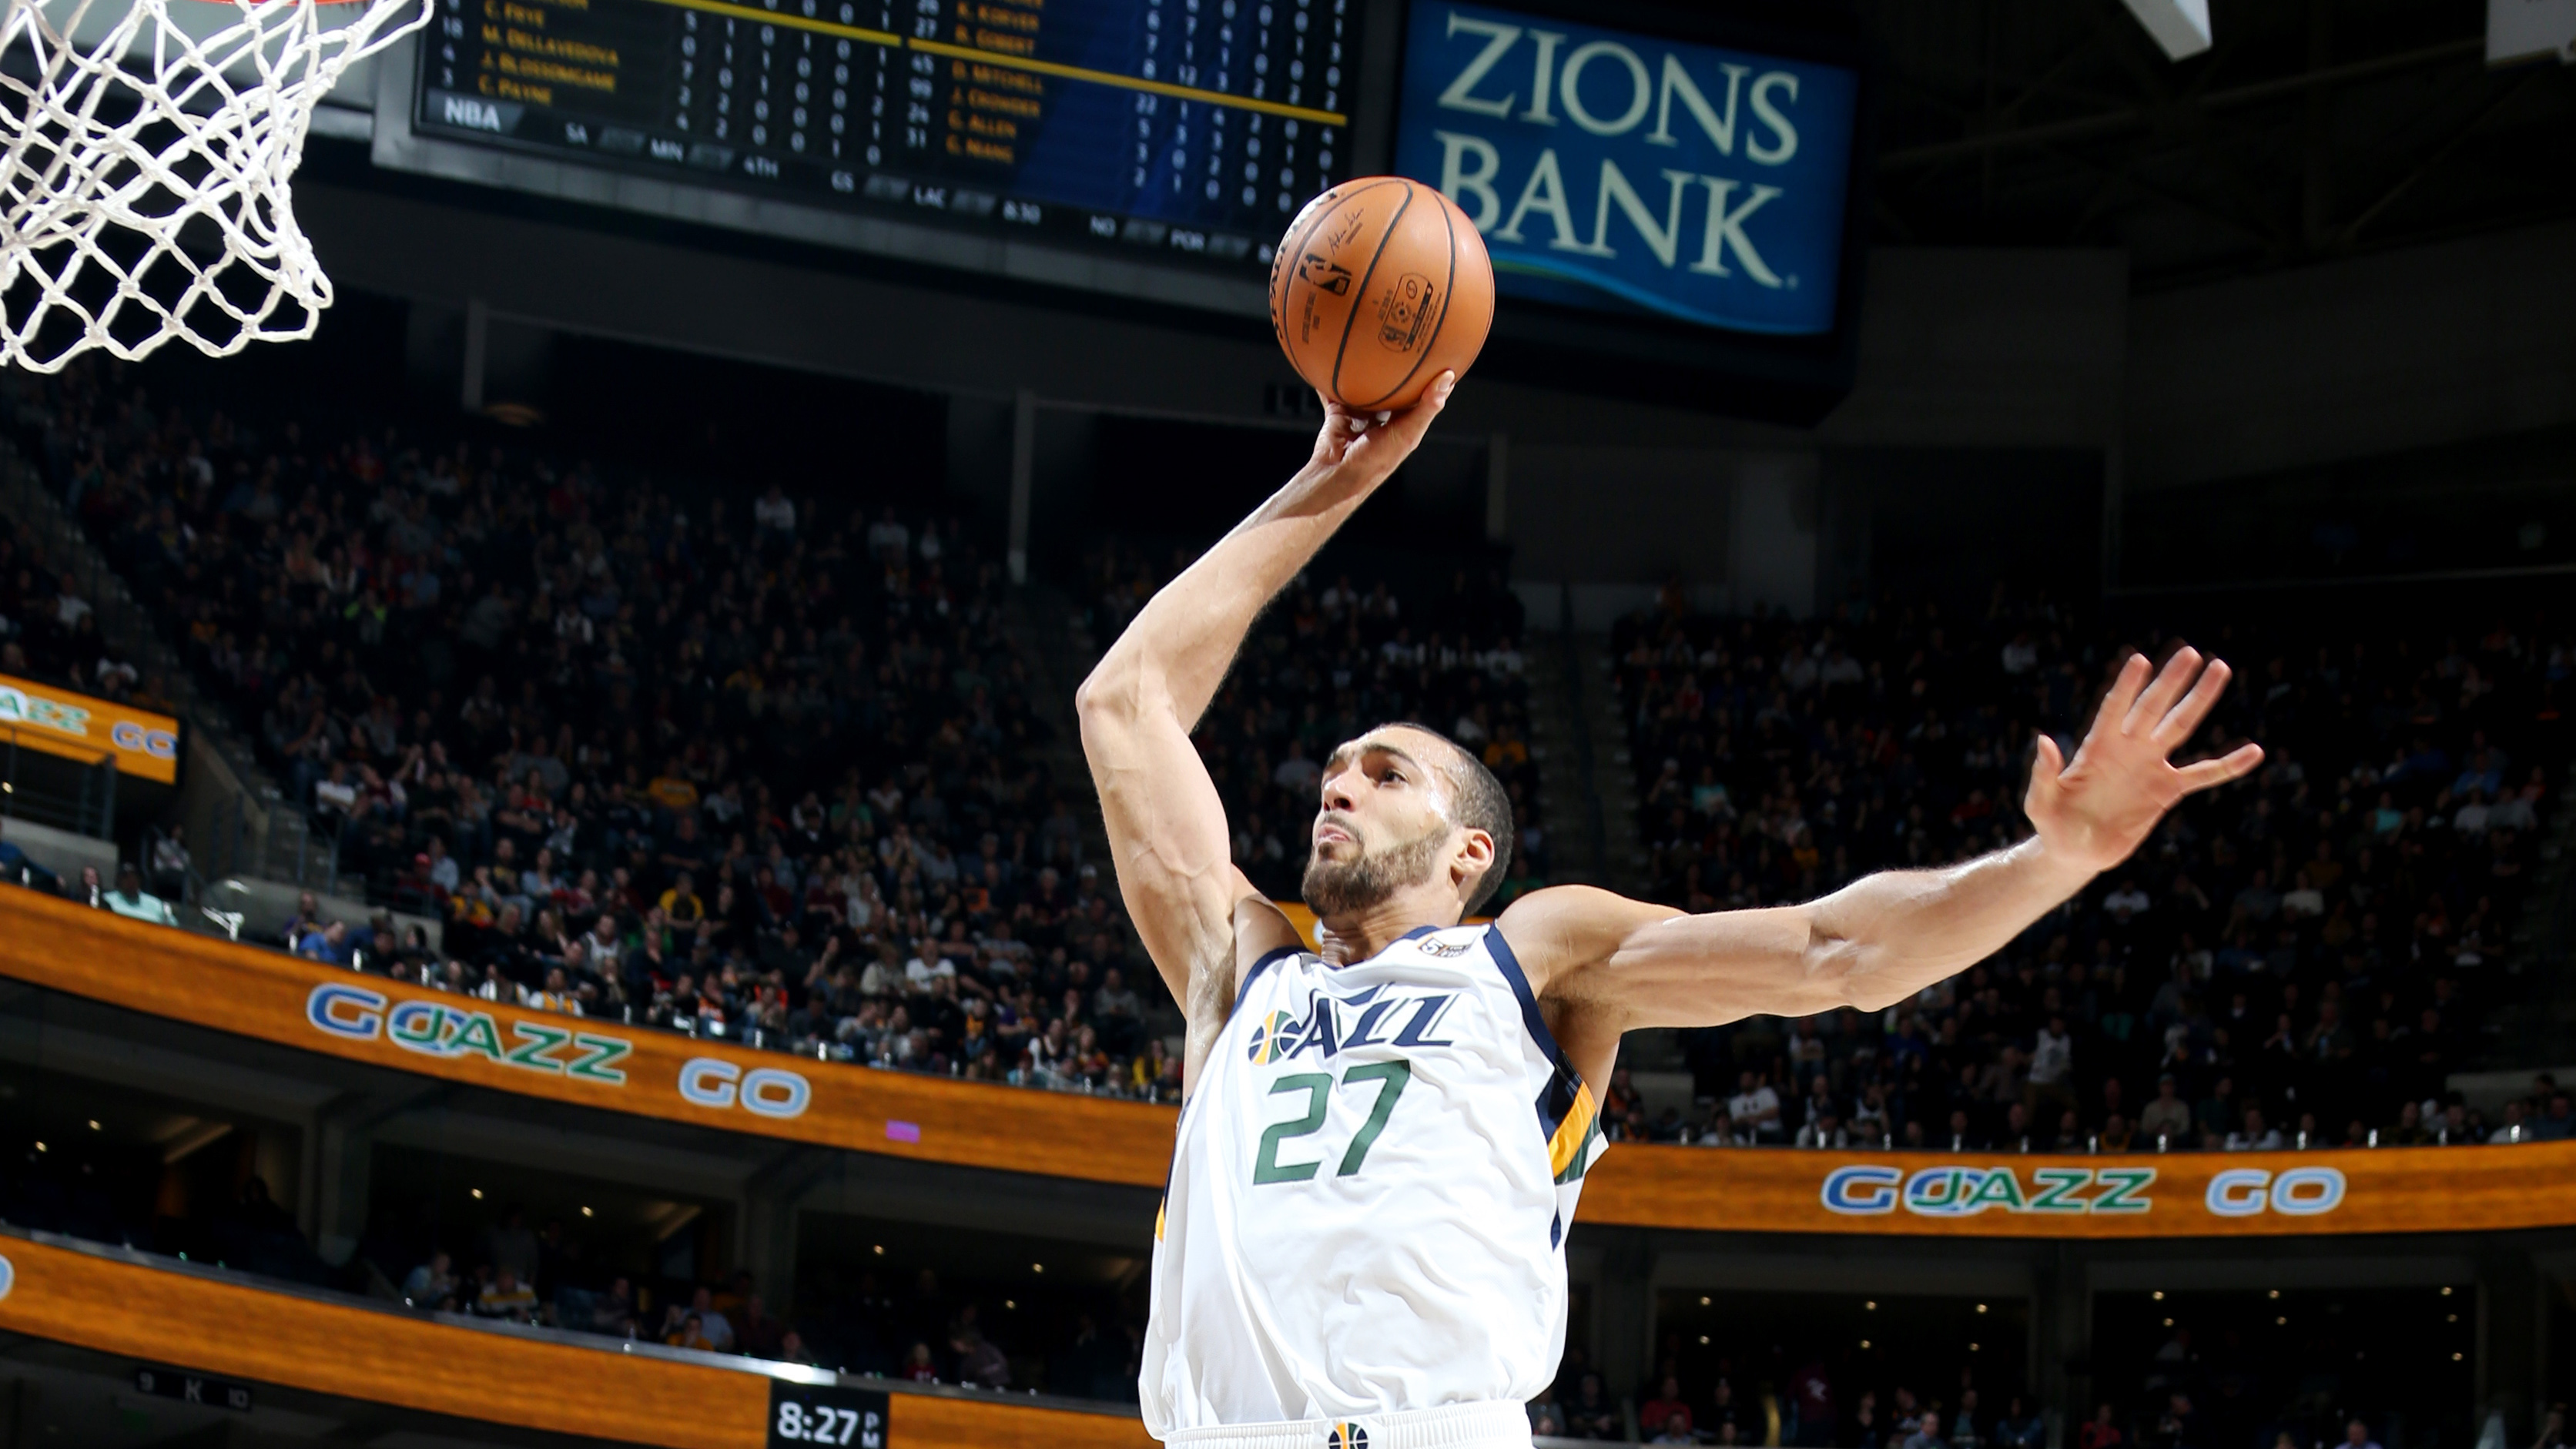 GAME RECAP: Jazz 115, Cavaliers 99